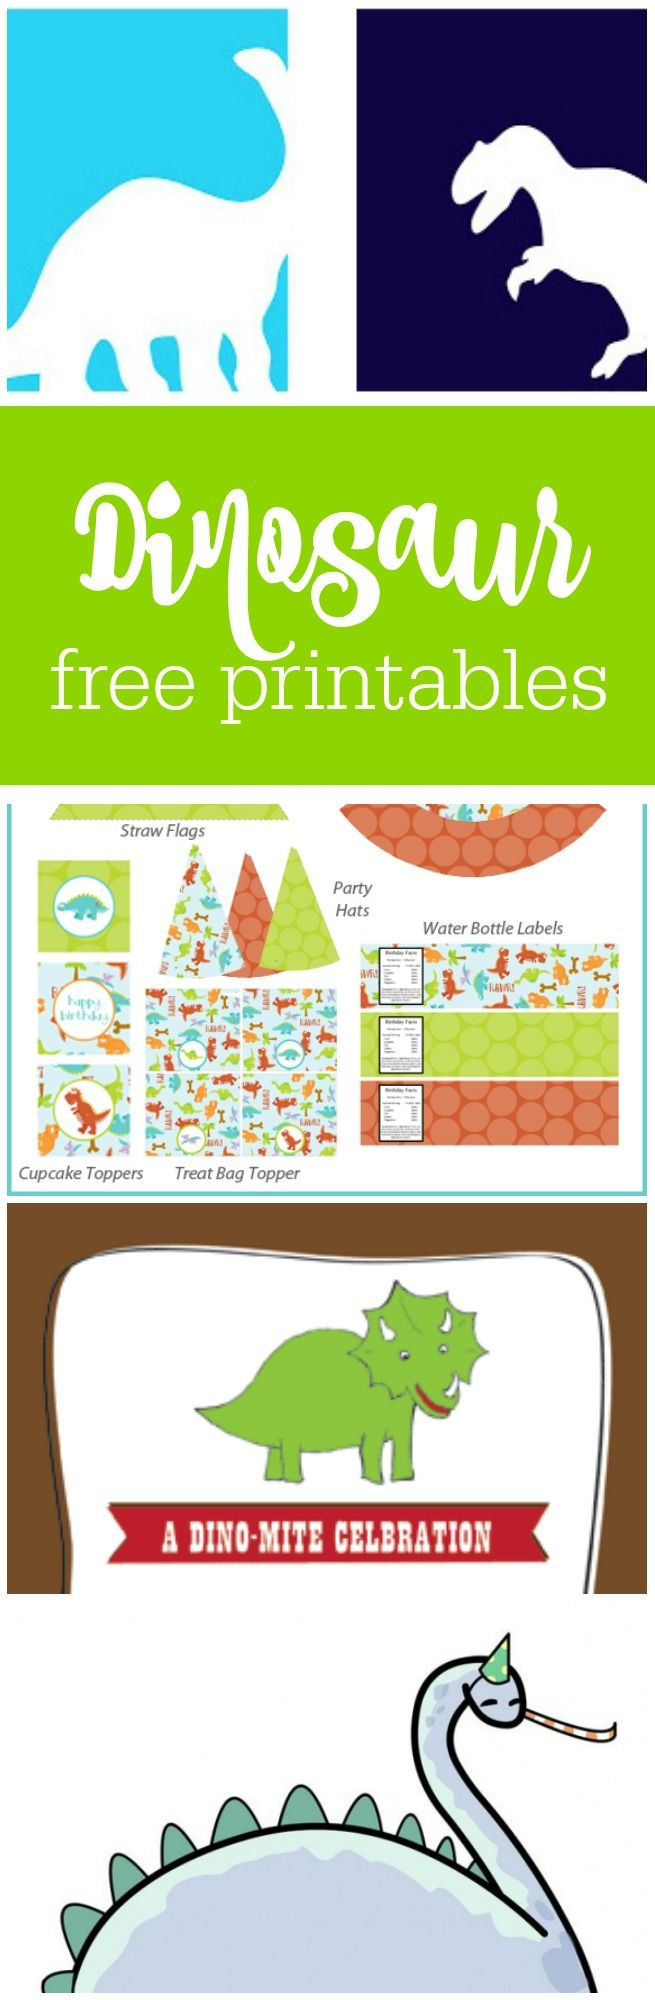 Free dinosaur party printables curated by The Party Teacher   http://thepartyteacher.com/2013/10/25/freebie-friday-free-dinosaur-party-printables/